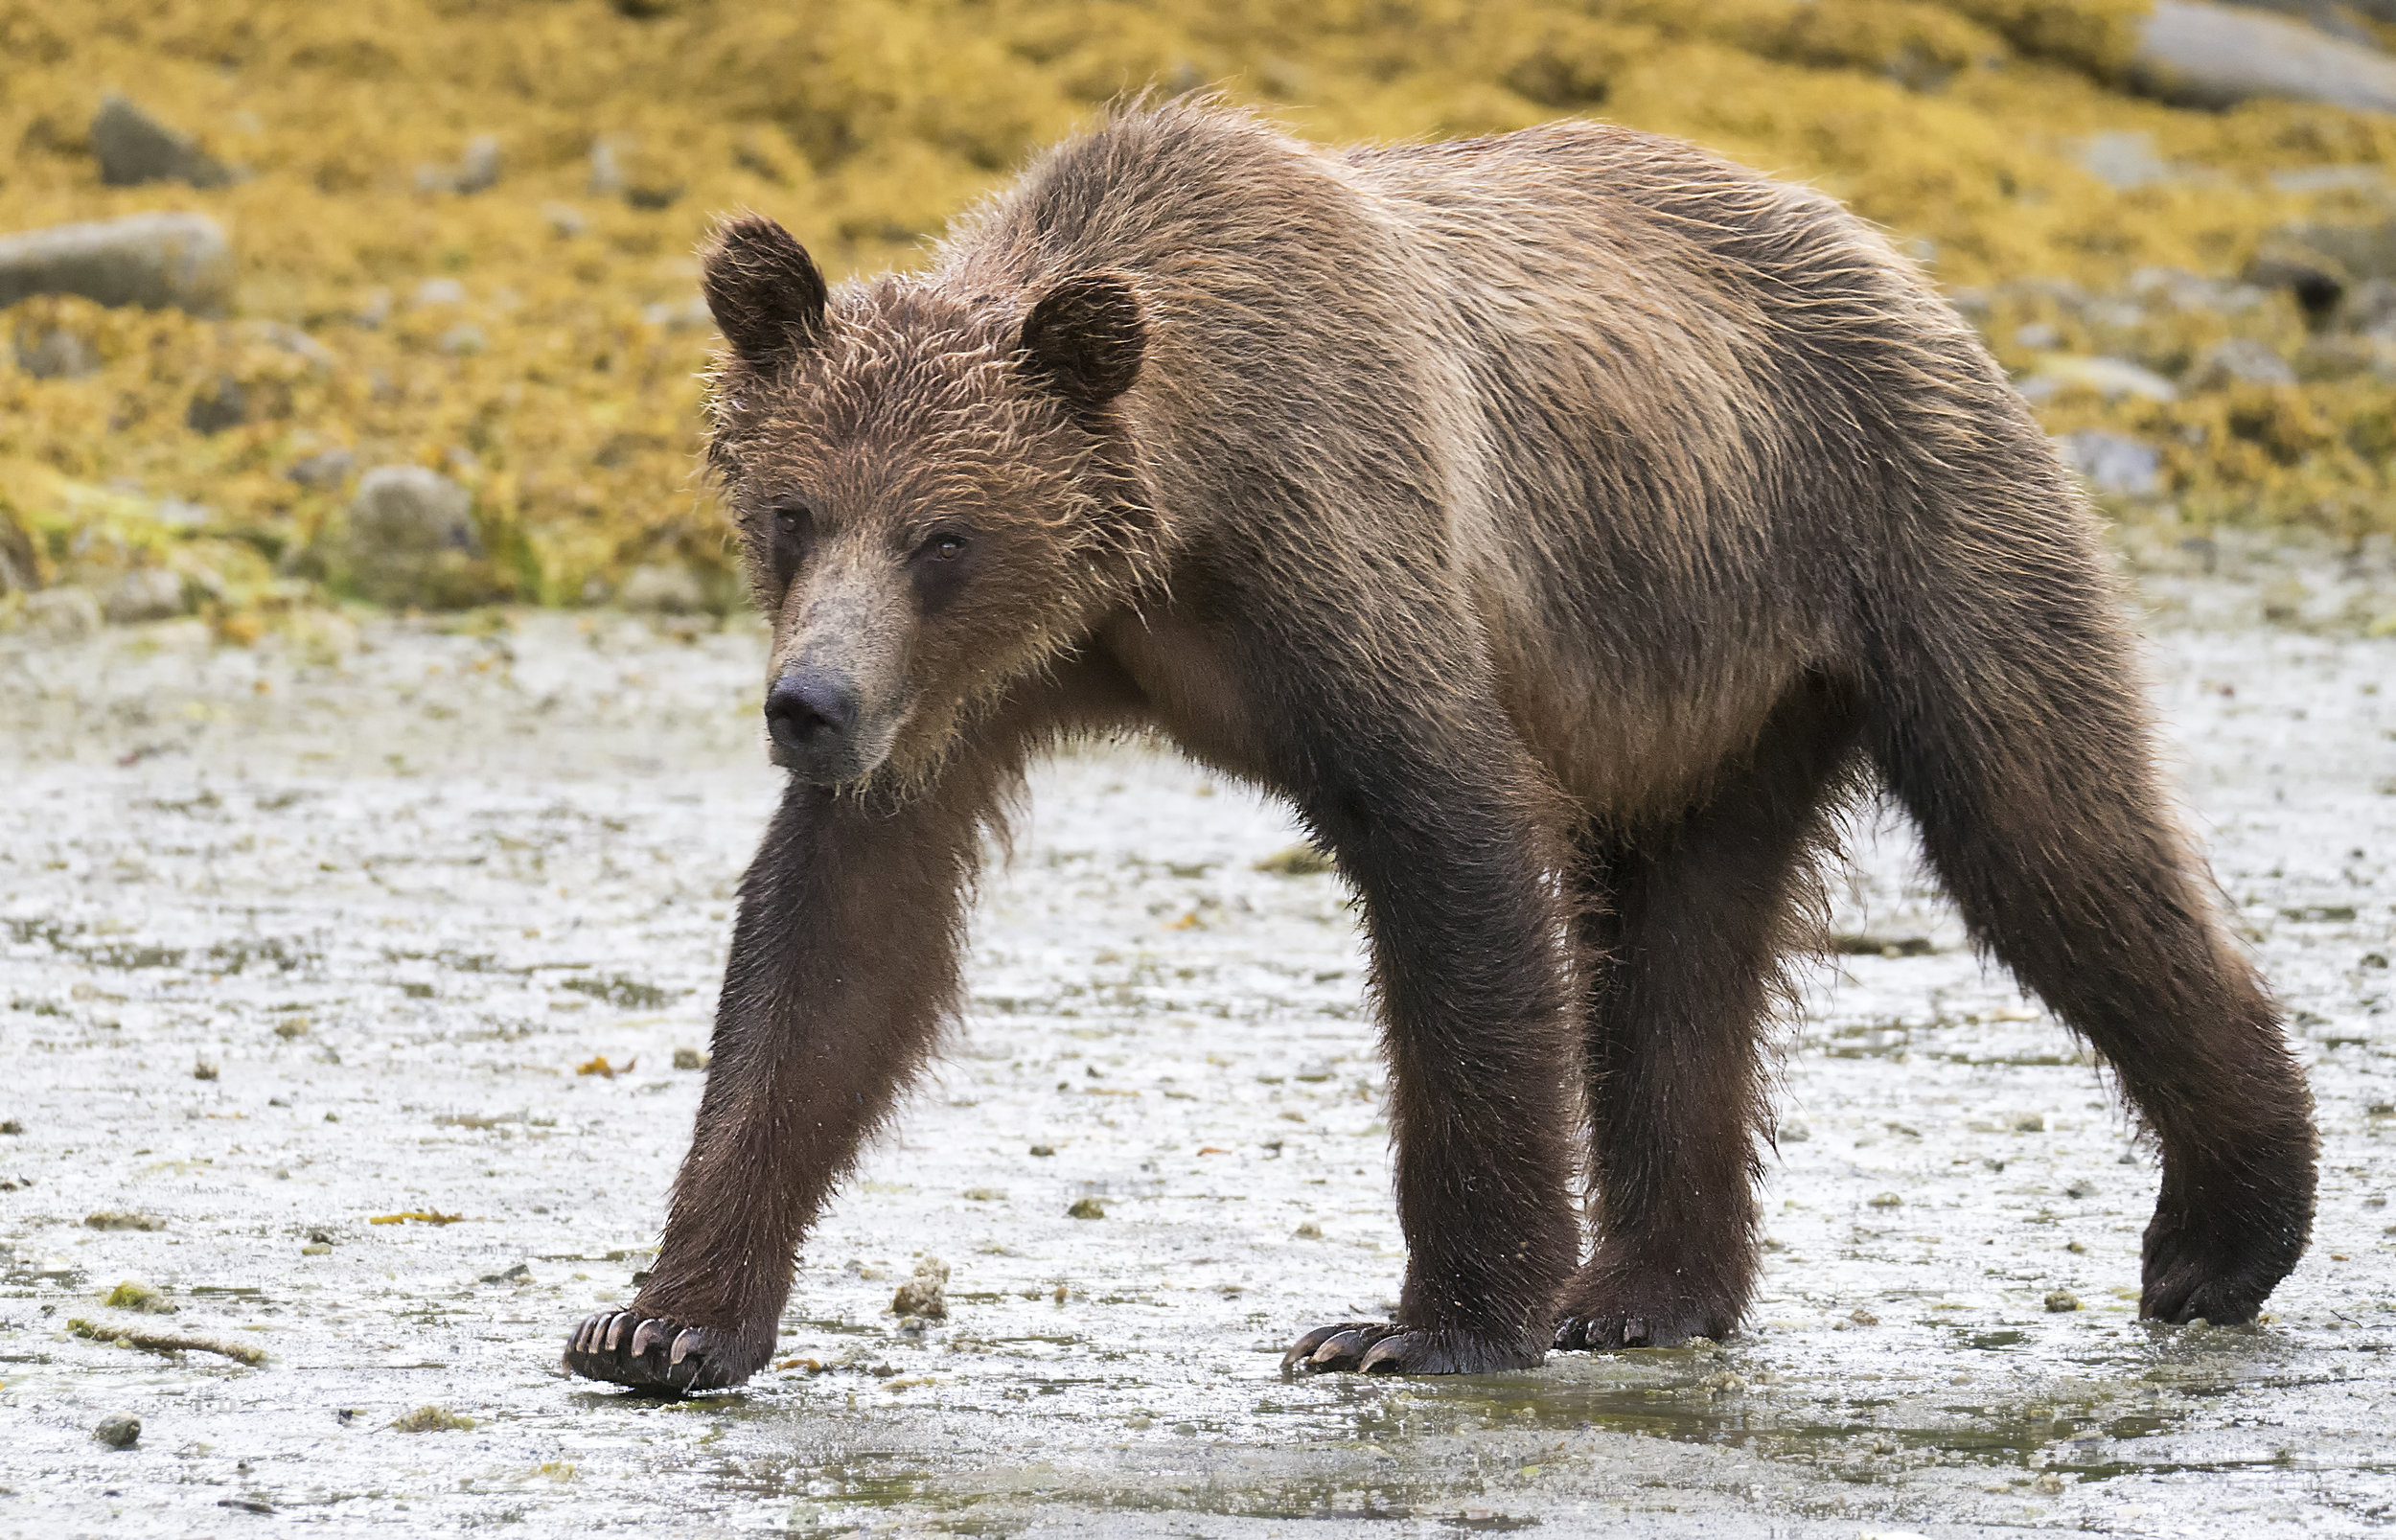 Grizzly bear in BC G85.jpg